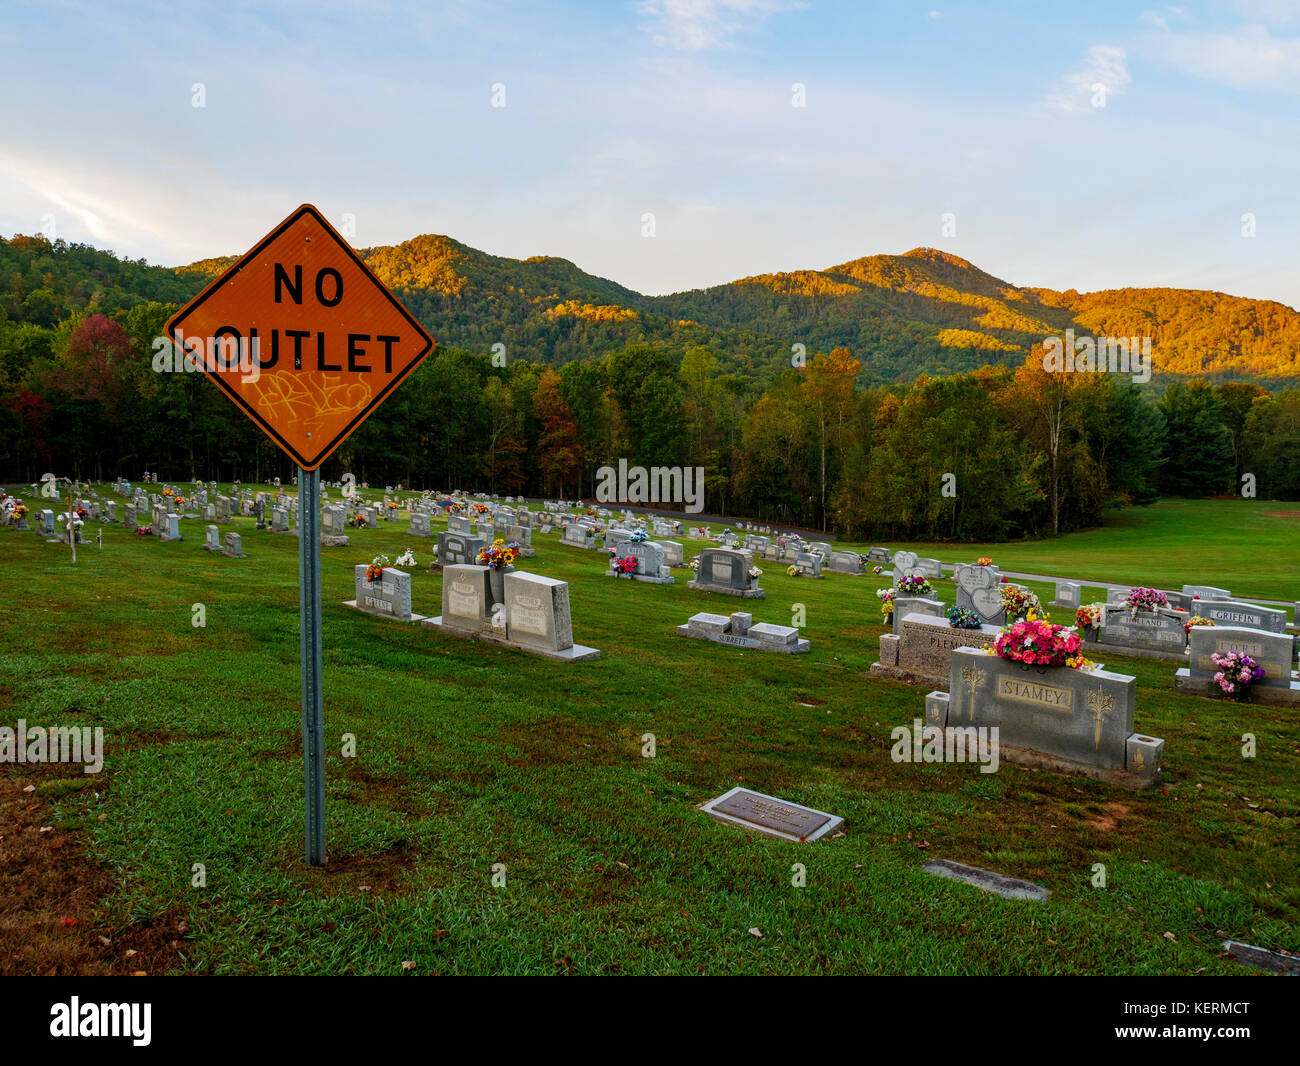 no-outlet-sign-next-to-cemetary-near-ash